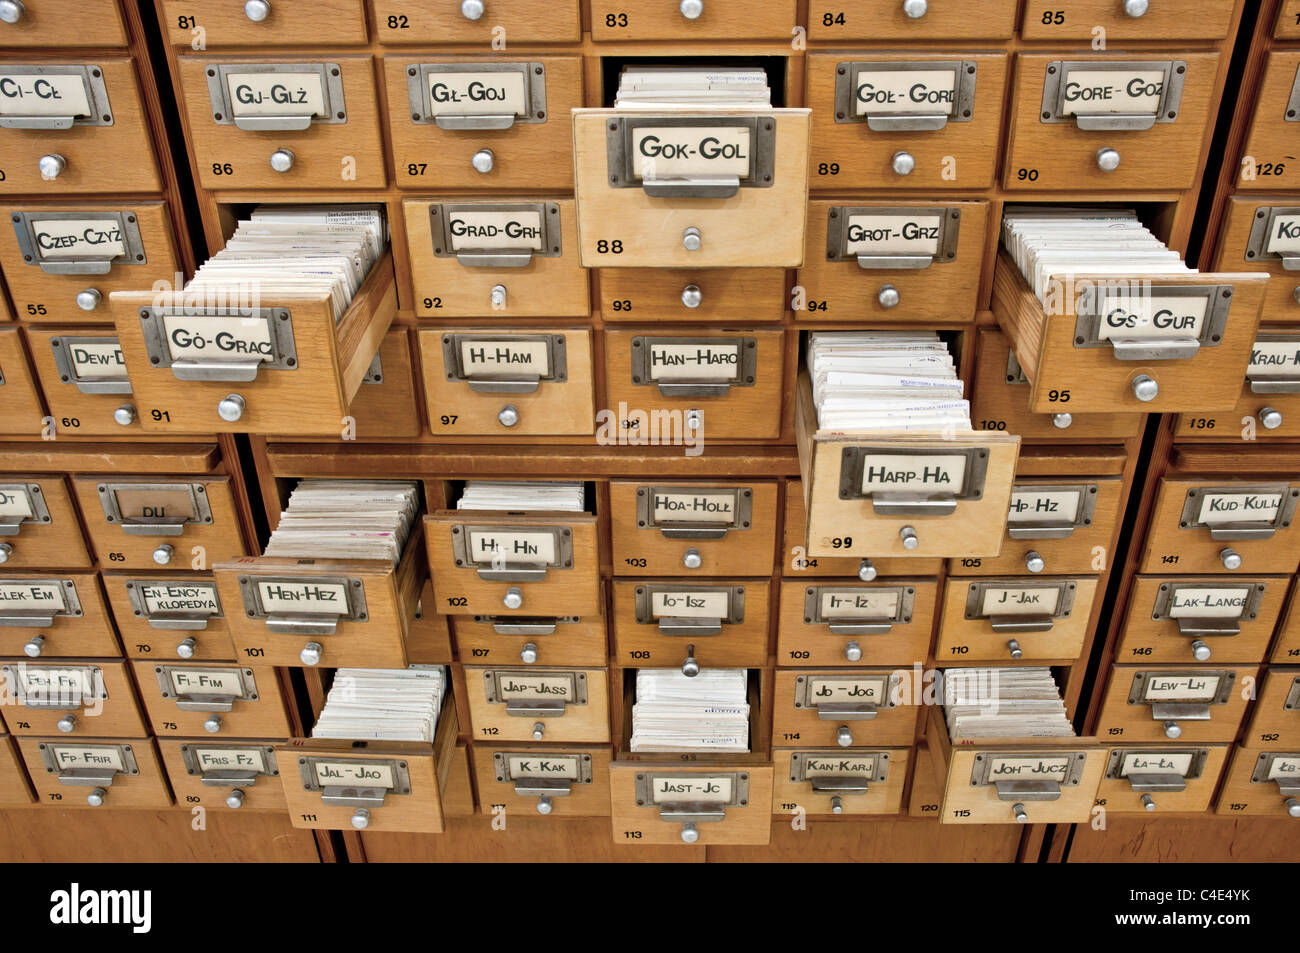 Old card catalogue in a library with some drawers opened - Stock Image